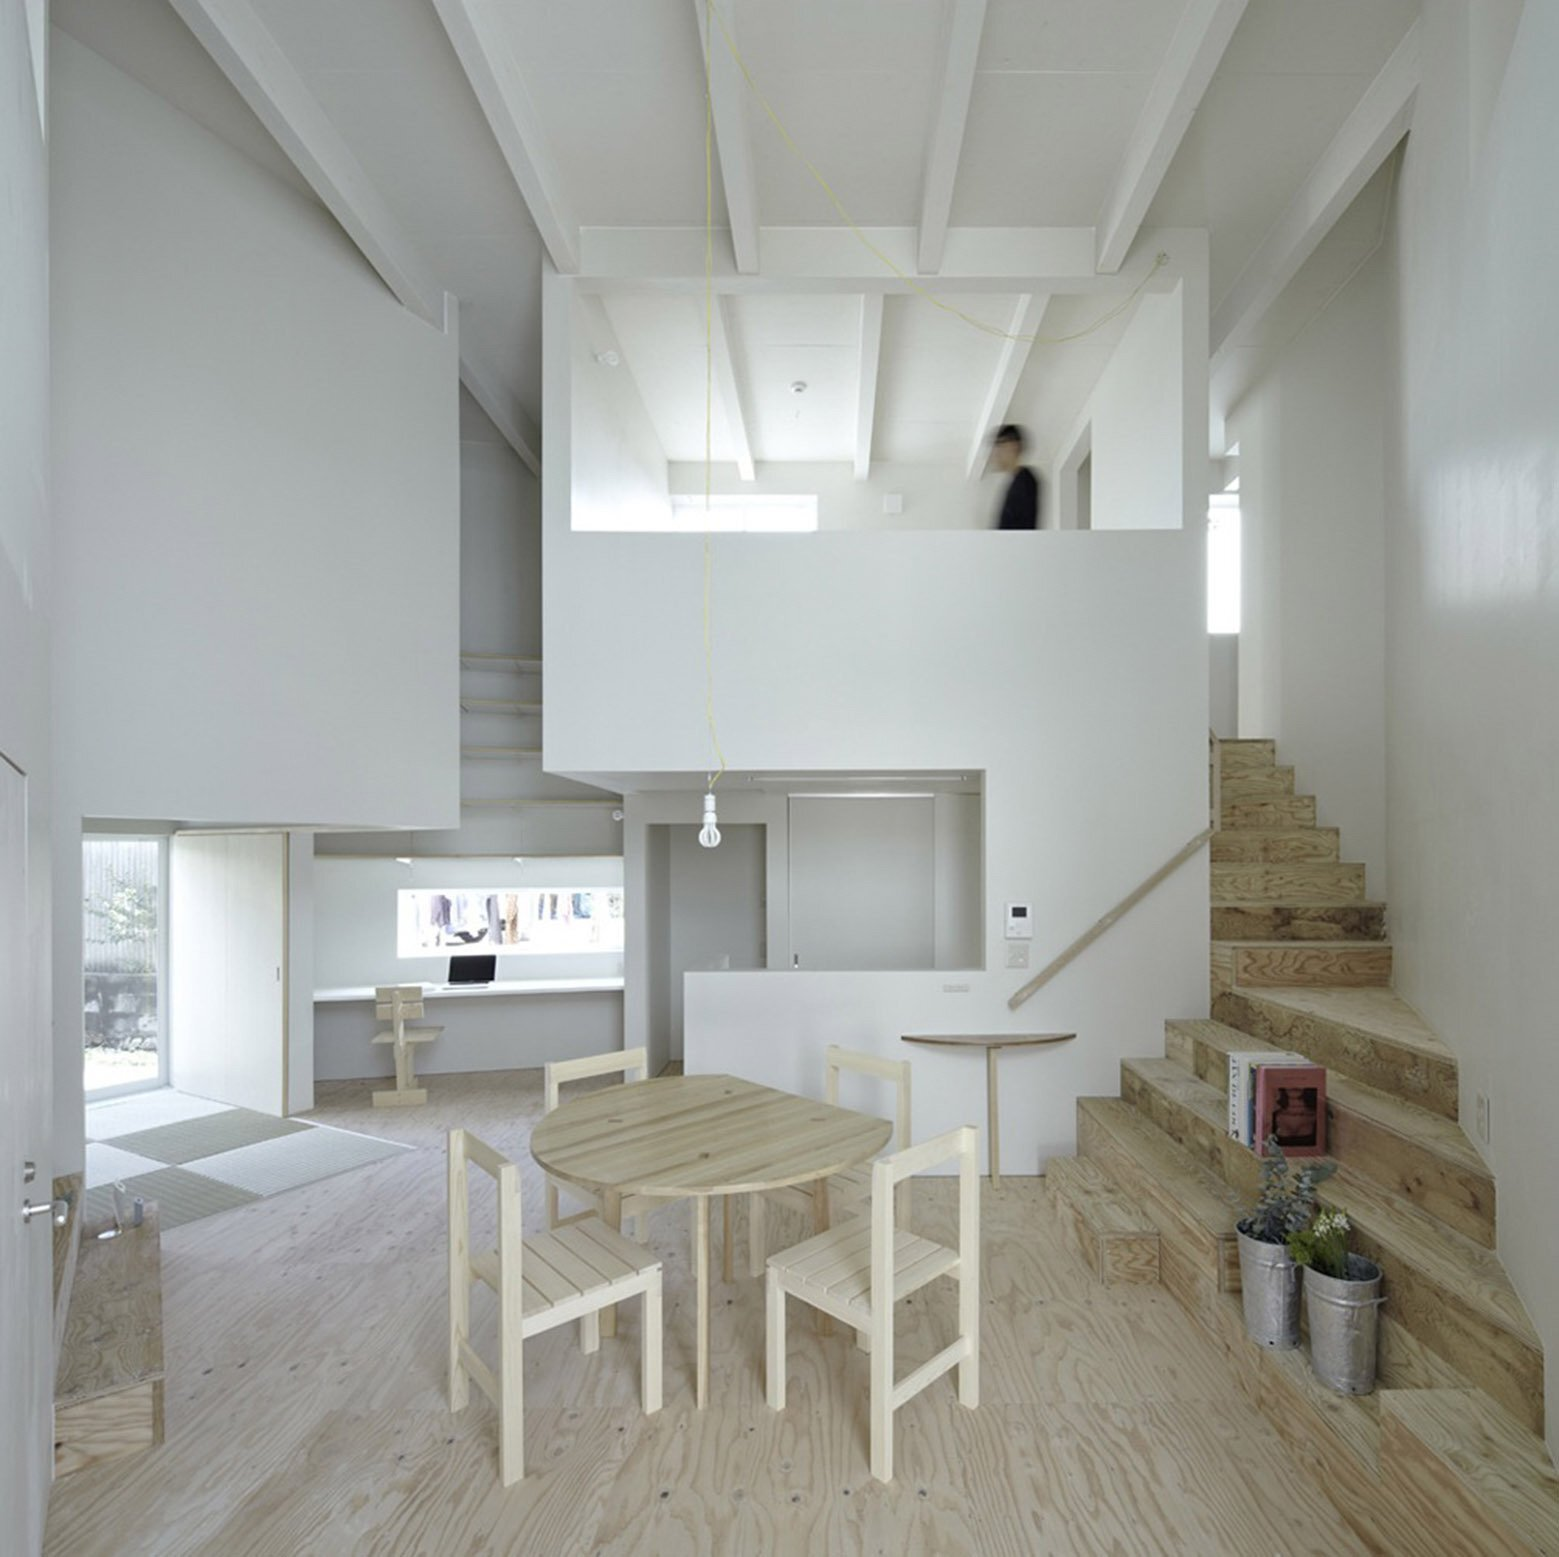 House In Iizuka - Japanese House - Rhythmdesign - Living Area - Humble Homes